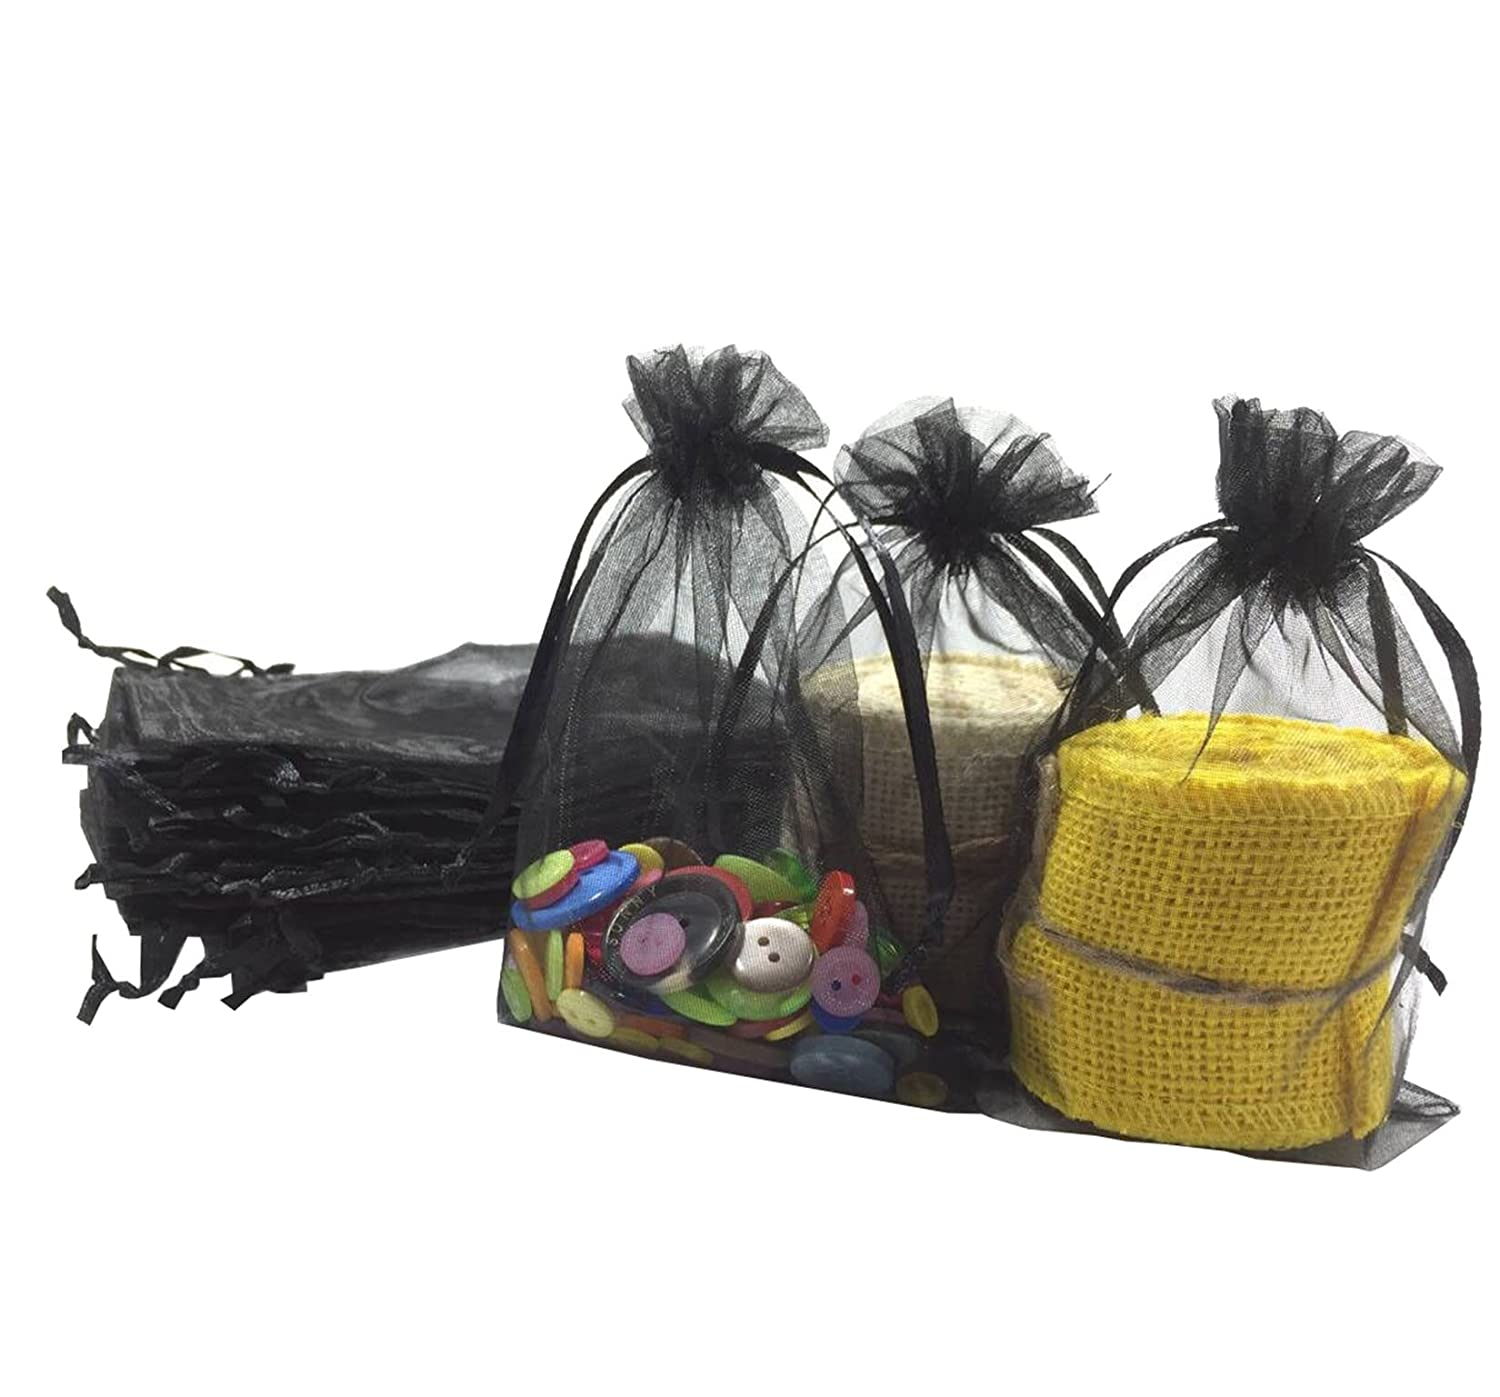 Wholesale 100 Pcs 3 7 X5 9 Black Organza Bags Wedding Favor Pouches Packing Bags Party Gift Bags Candy Bag Jewelry Pouch Drawstring Bags